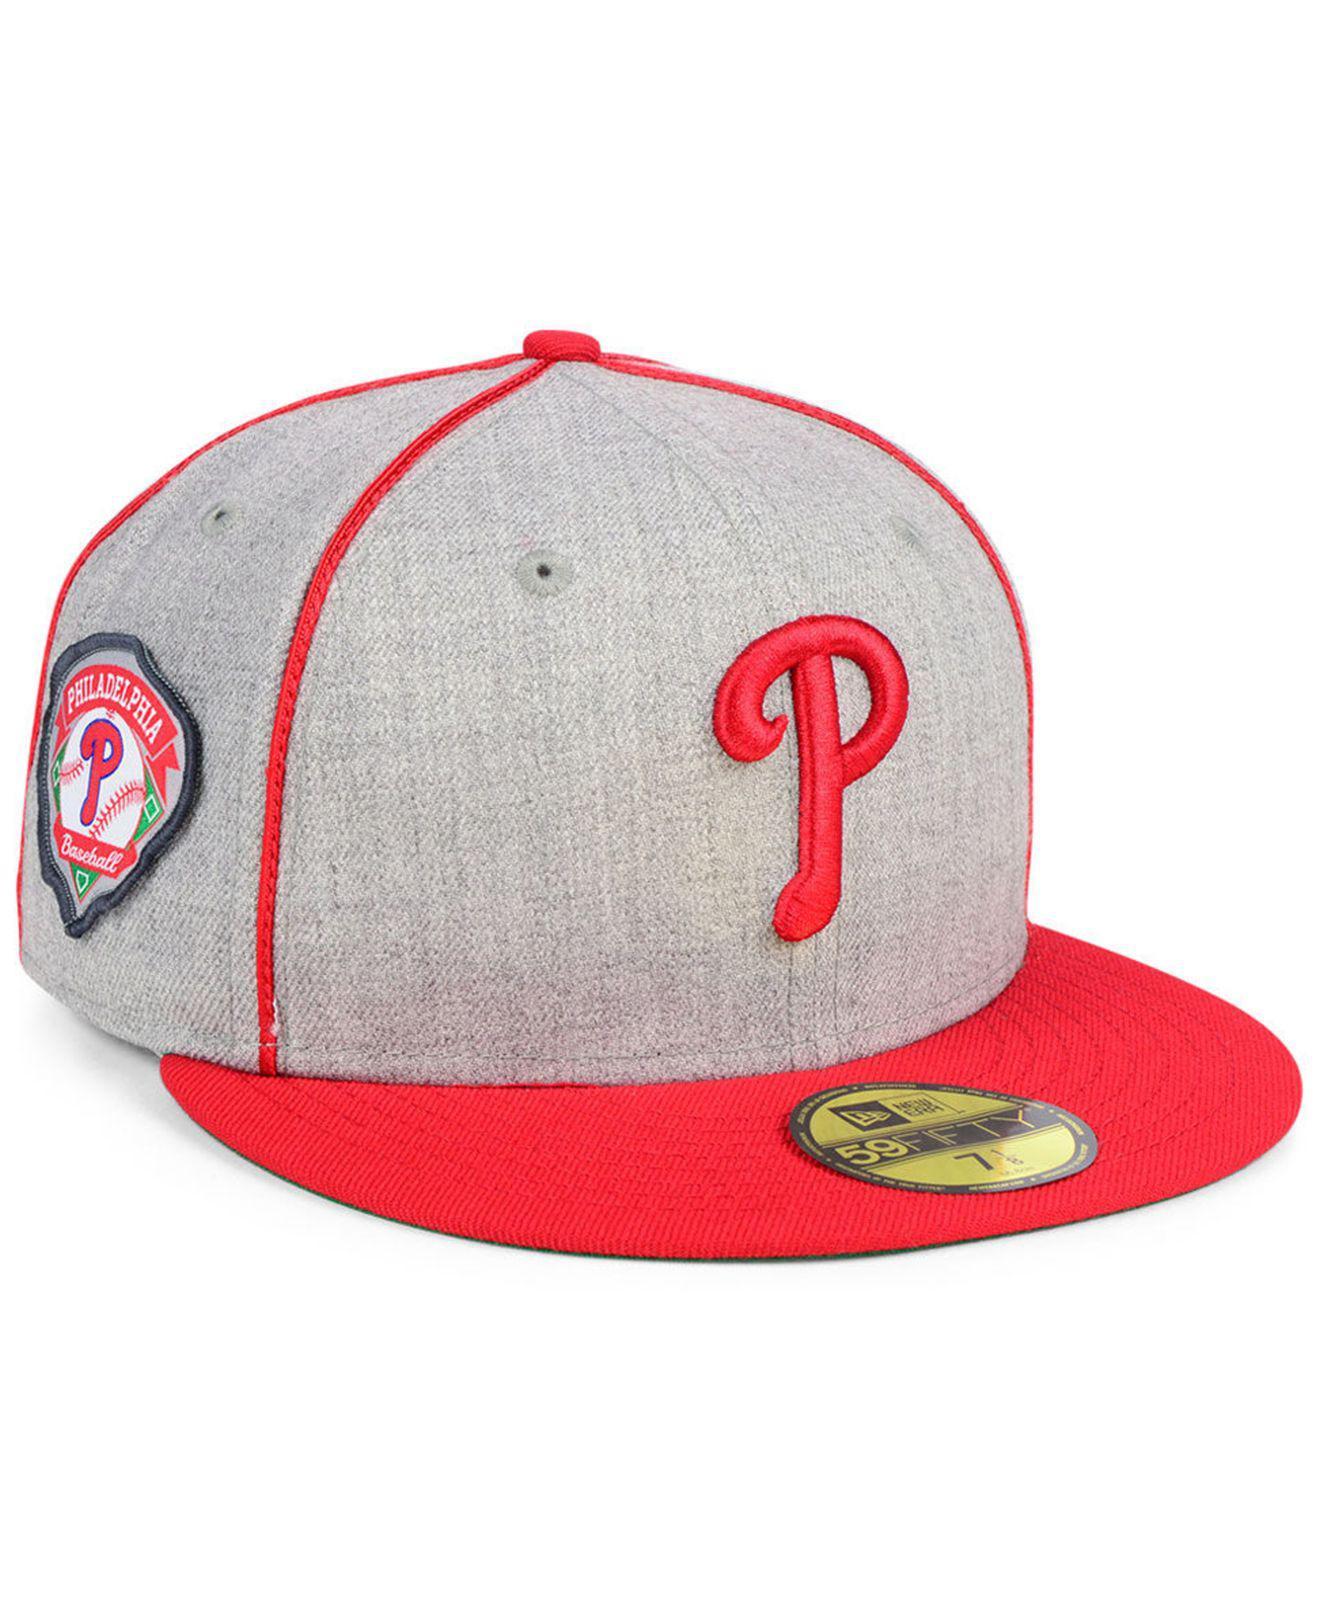 detailed look 58f80 b967b ... sale ktz. mens red philadelphia phillies stache 59fifty fitted cap  35516 e2669